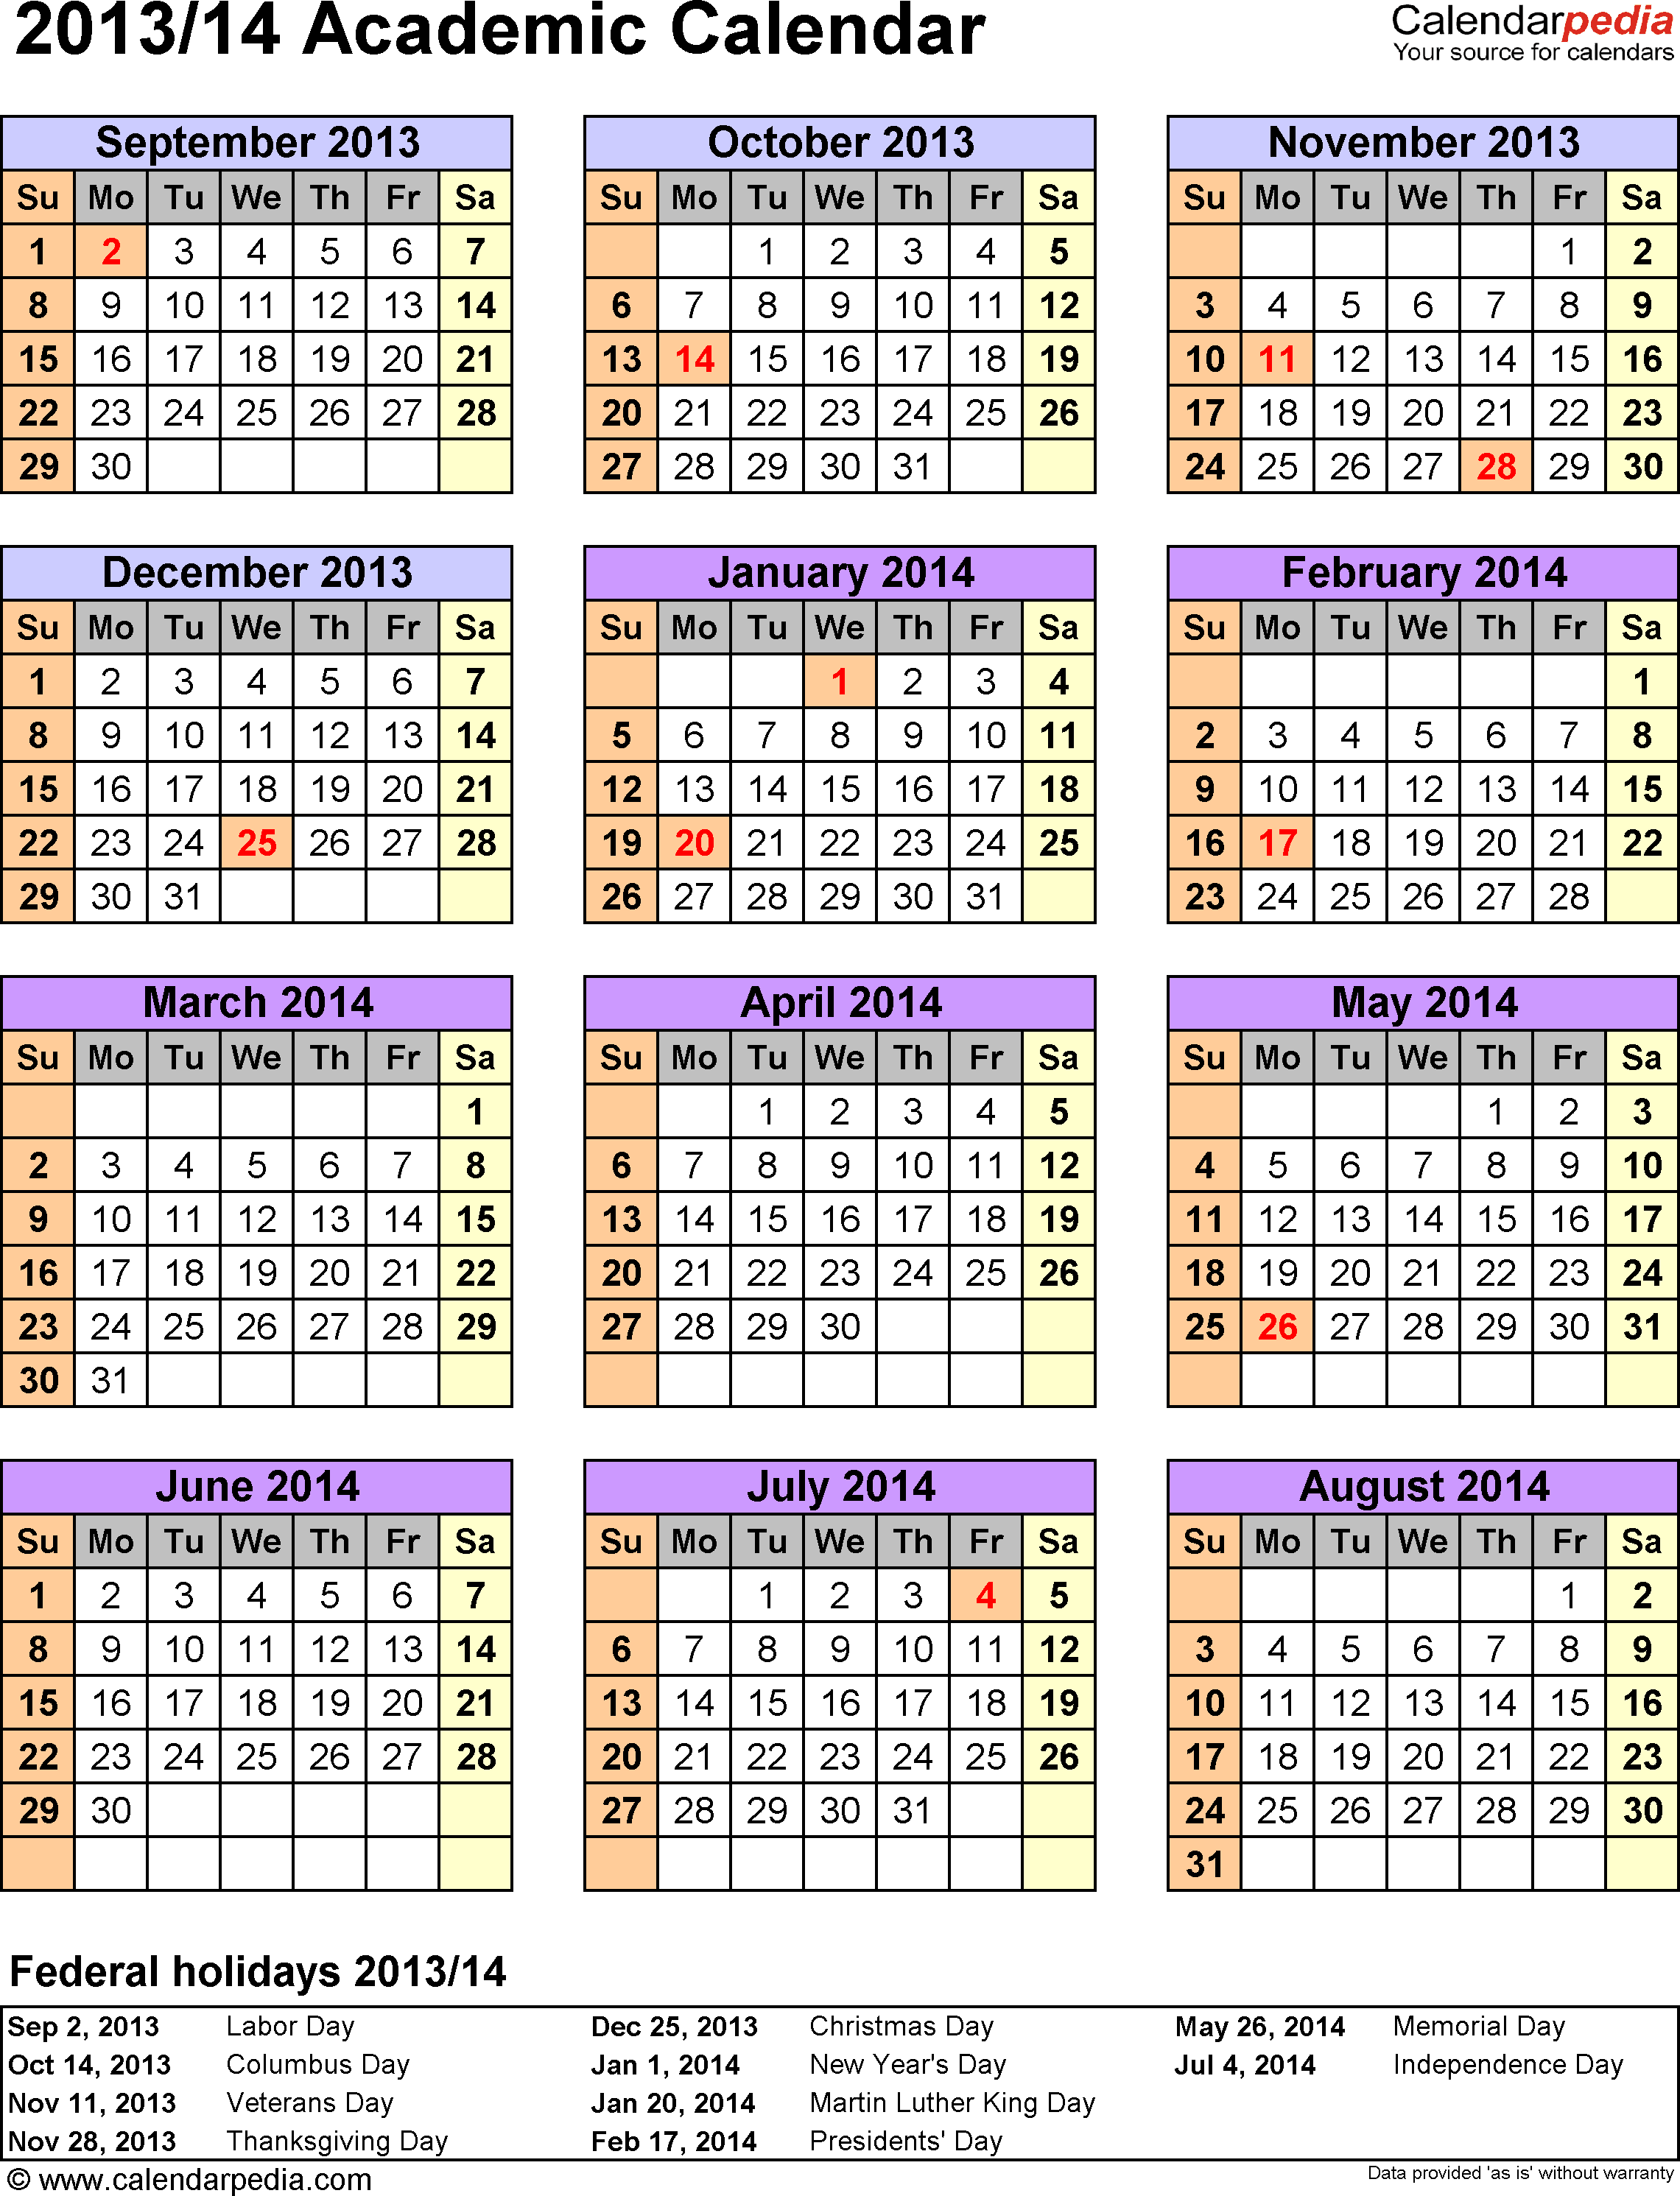 Download Template 5: Academic calendar 2013/14 for Microsoft Excel (.xlsx file), portrait, 1 page, year at a glance